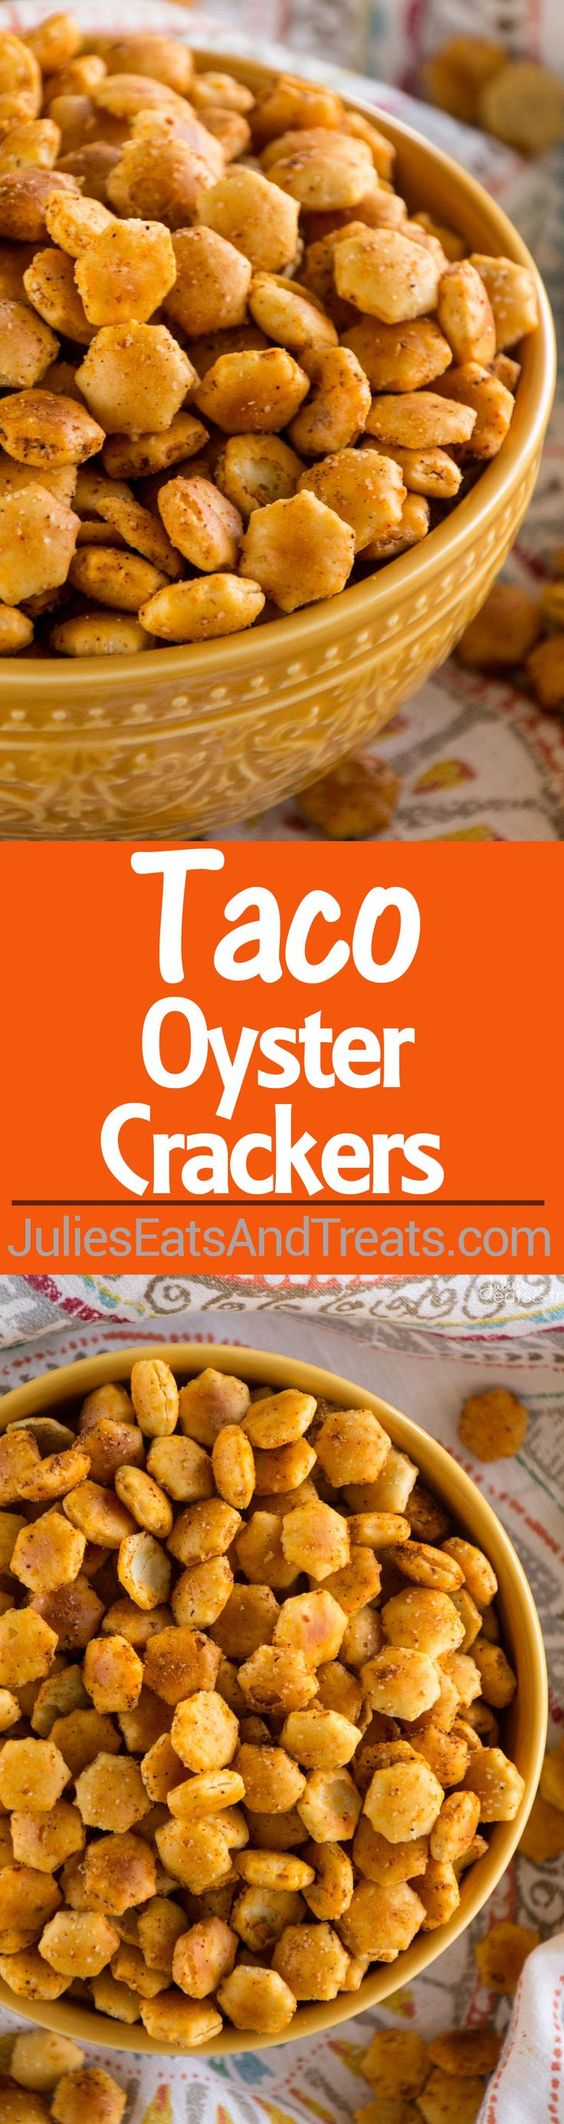 Taco Oyster Crackers Recipe ~ Quick, Easy Snack Mix Recipe that's ...